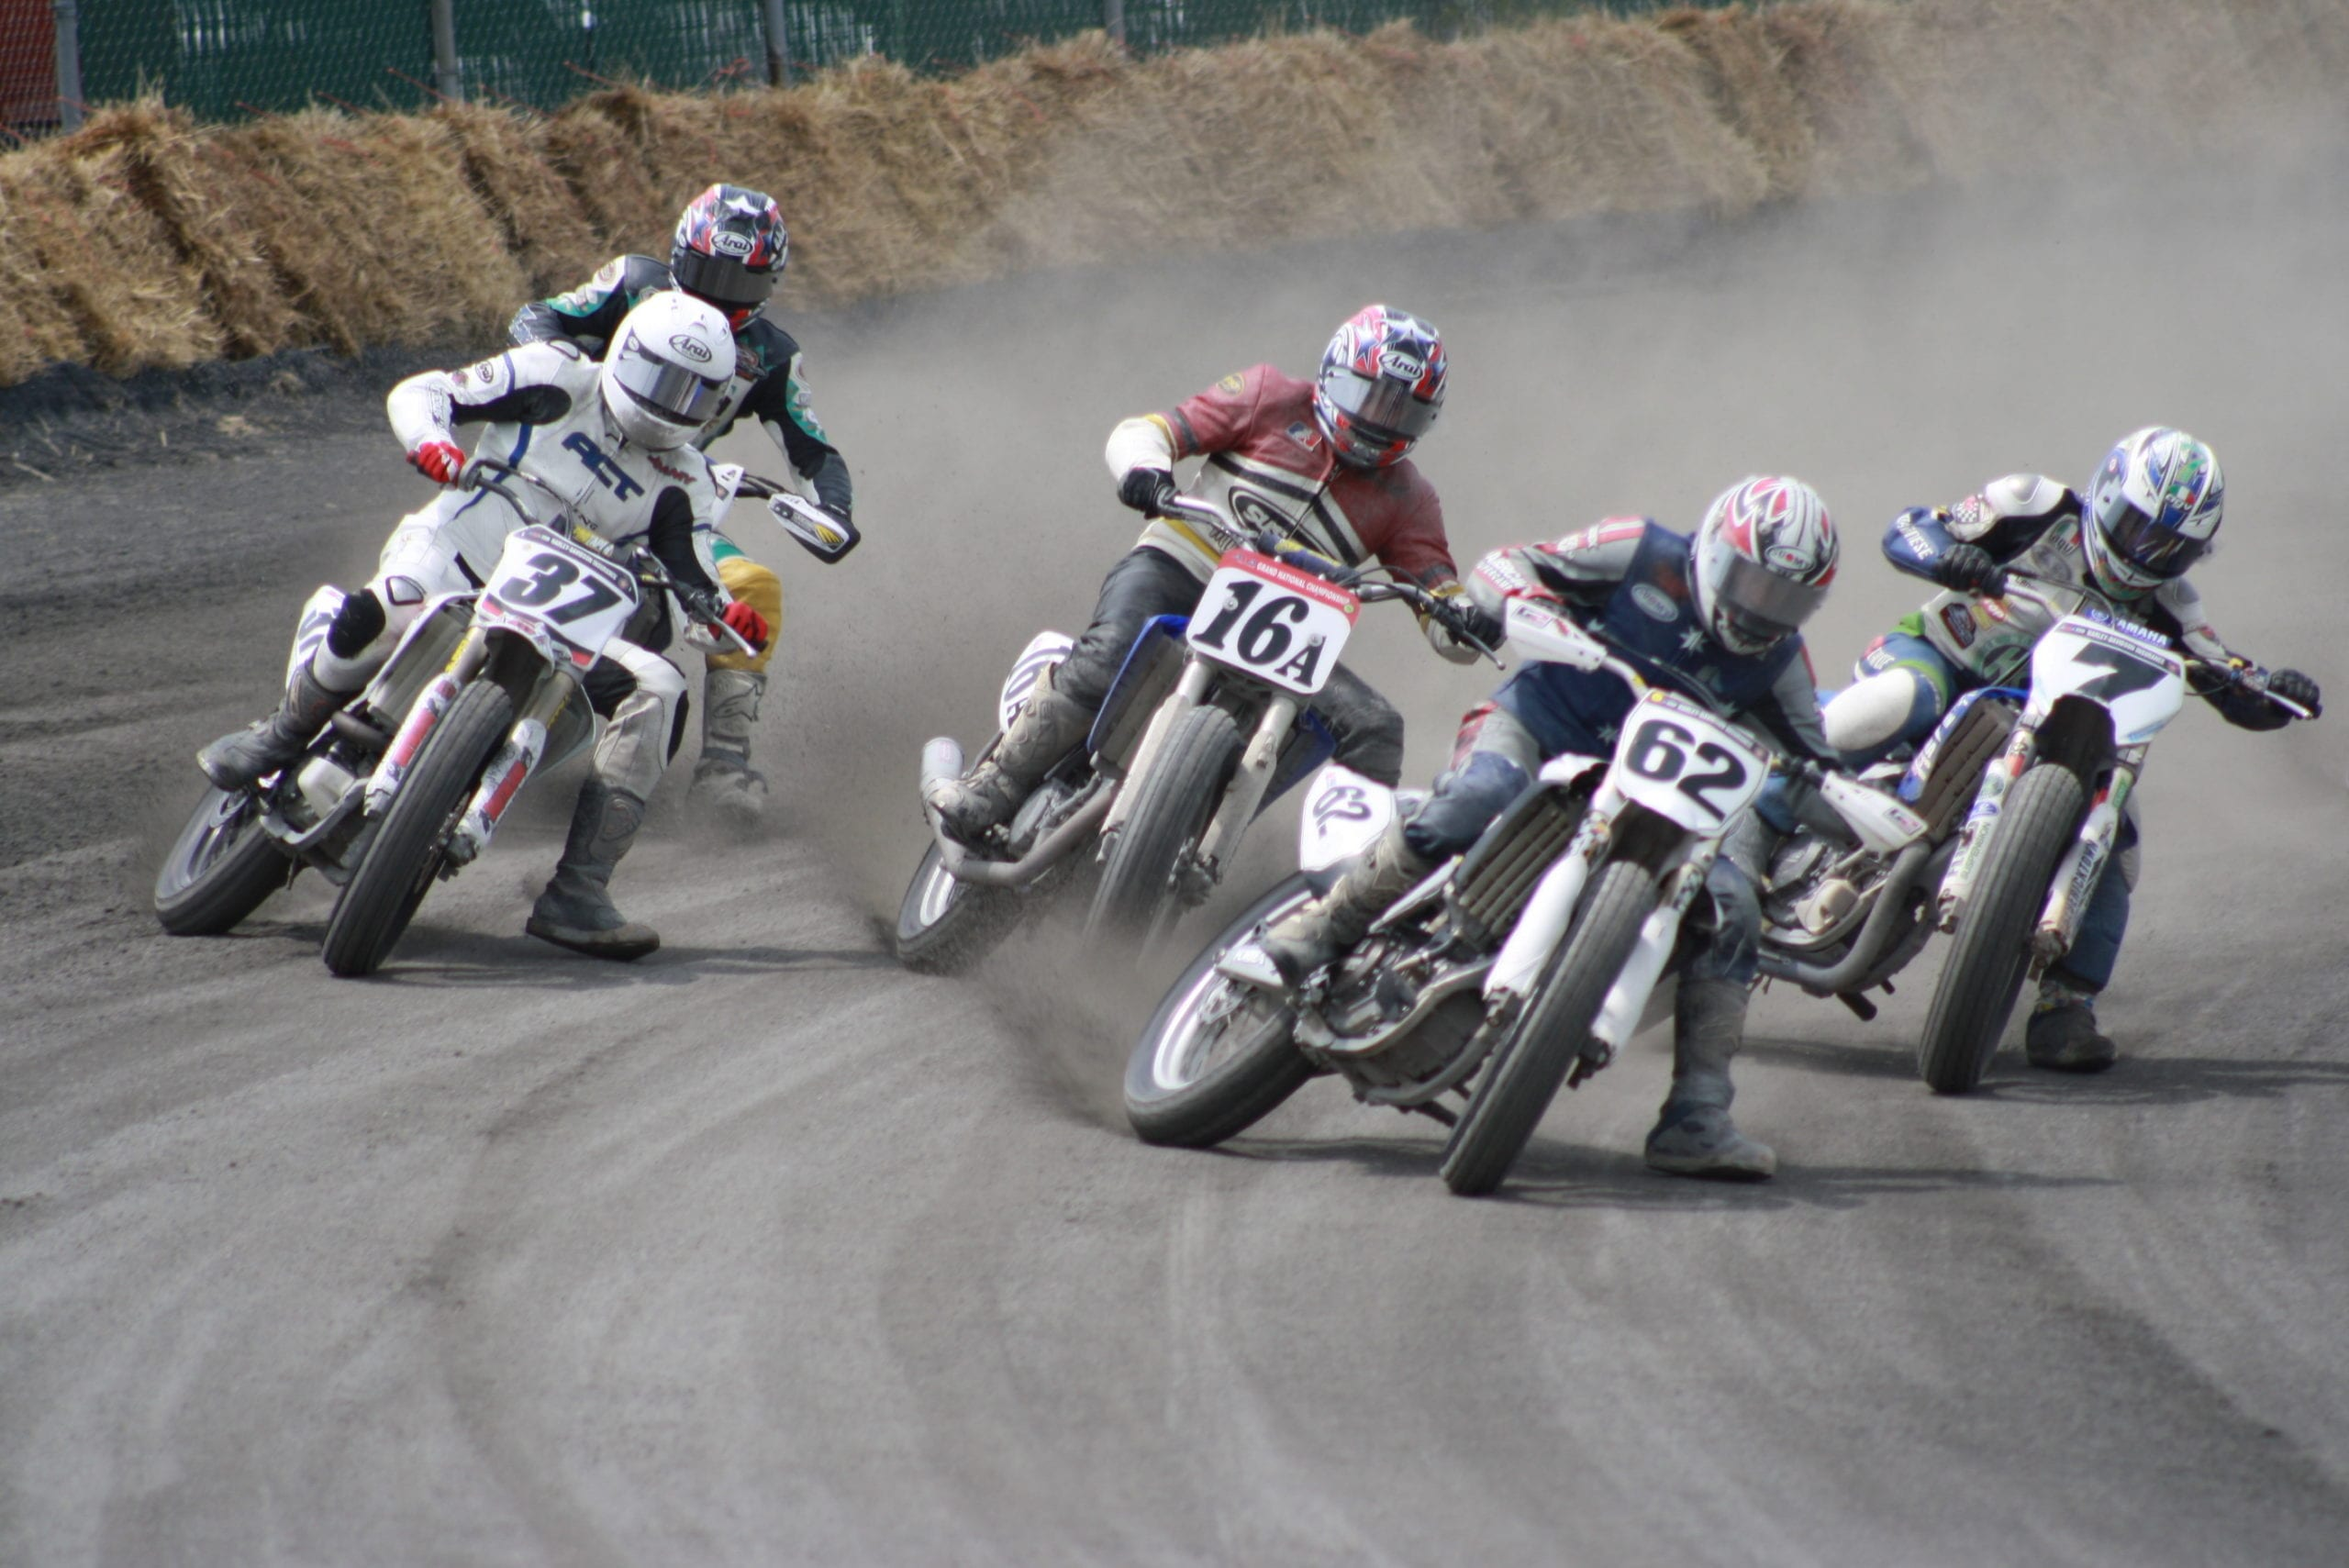 Flat Track Races At Black Hills Speedway Sturgis Cyclevin